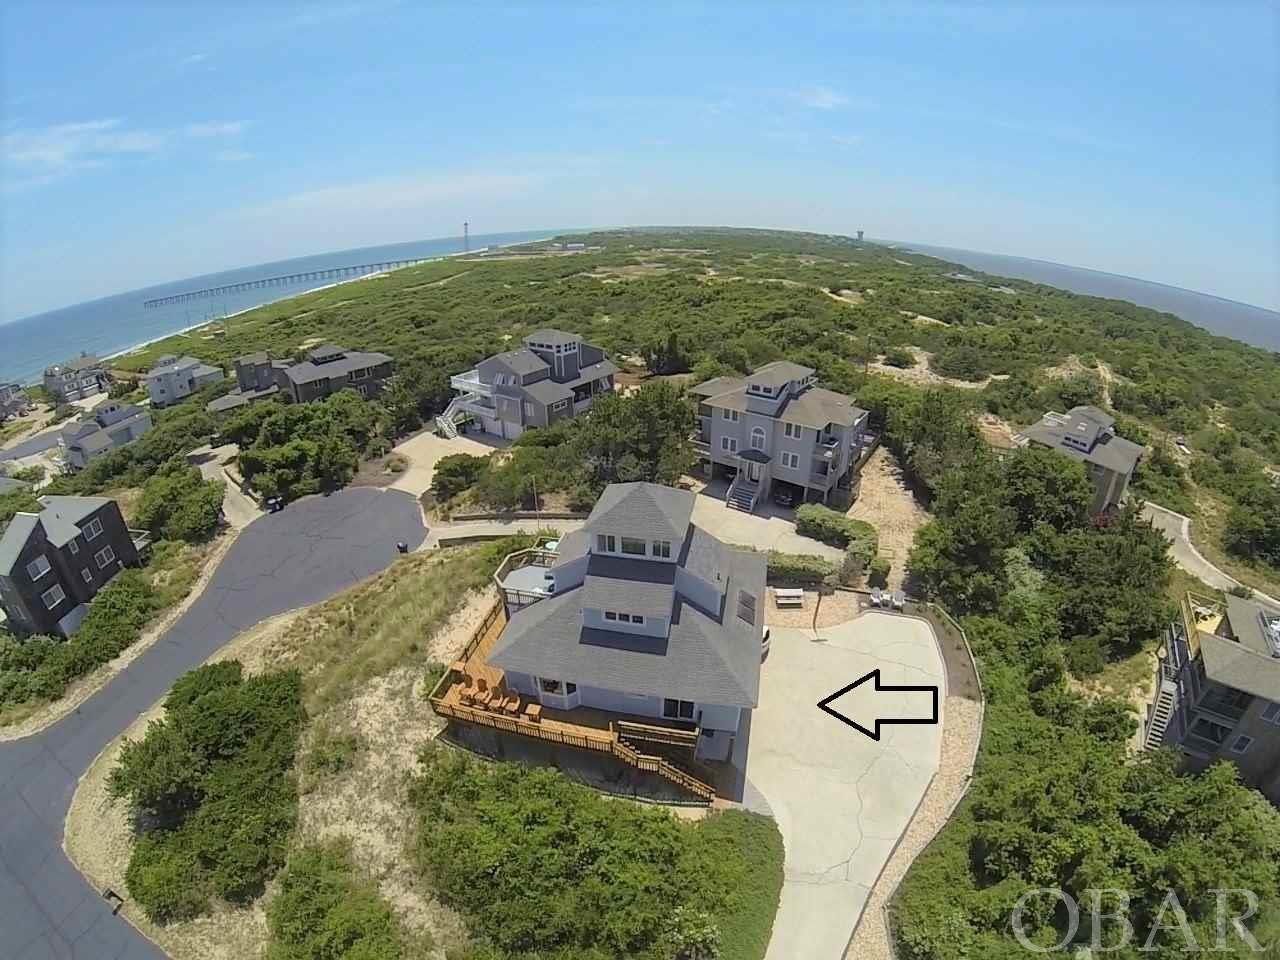 Perched high on a hill, this 4 bedroom, 3 bathroom home offers spectacular ocean and sound views and the beach access is only steps away. You will love the panoramic sunrises and sunsets that you can see from the shipswatch of this gorgeous home. The second floor features an open concept living room, dining room and kitchen that has great ocean views. There are also 3 bedrooms, 2 bathrooms. One bedroom has a private bath and deck access. The third floor offers a huge bedroom with private deck, bathroom and sitting area. The ocean views are amazing! On the 4th floor you will love the shipswatch which provides phenomenal 360 degree ocean and sound views. Shipswatch would also be perfect for a home office with privacy and a quiet atmosphere. Just across Duck Road from Osprey is Nor'Banks Sailing & Watersports and The Village Table and Tavern where you can enjoy lunch, dinner or both. Just minutes away in Duck Village are unique shops, inviting restaurants, sound front boardwalk and the town park with play ground, live music,Yoga on the green, festivals and more.